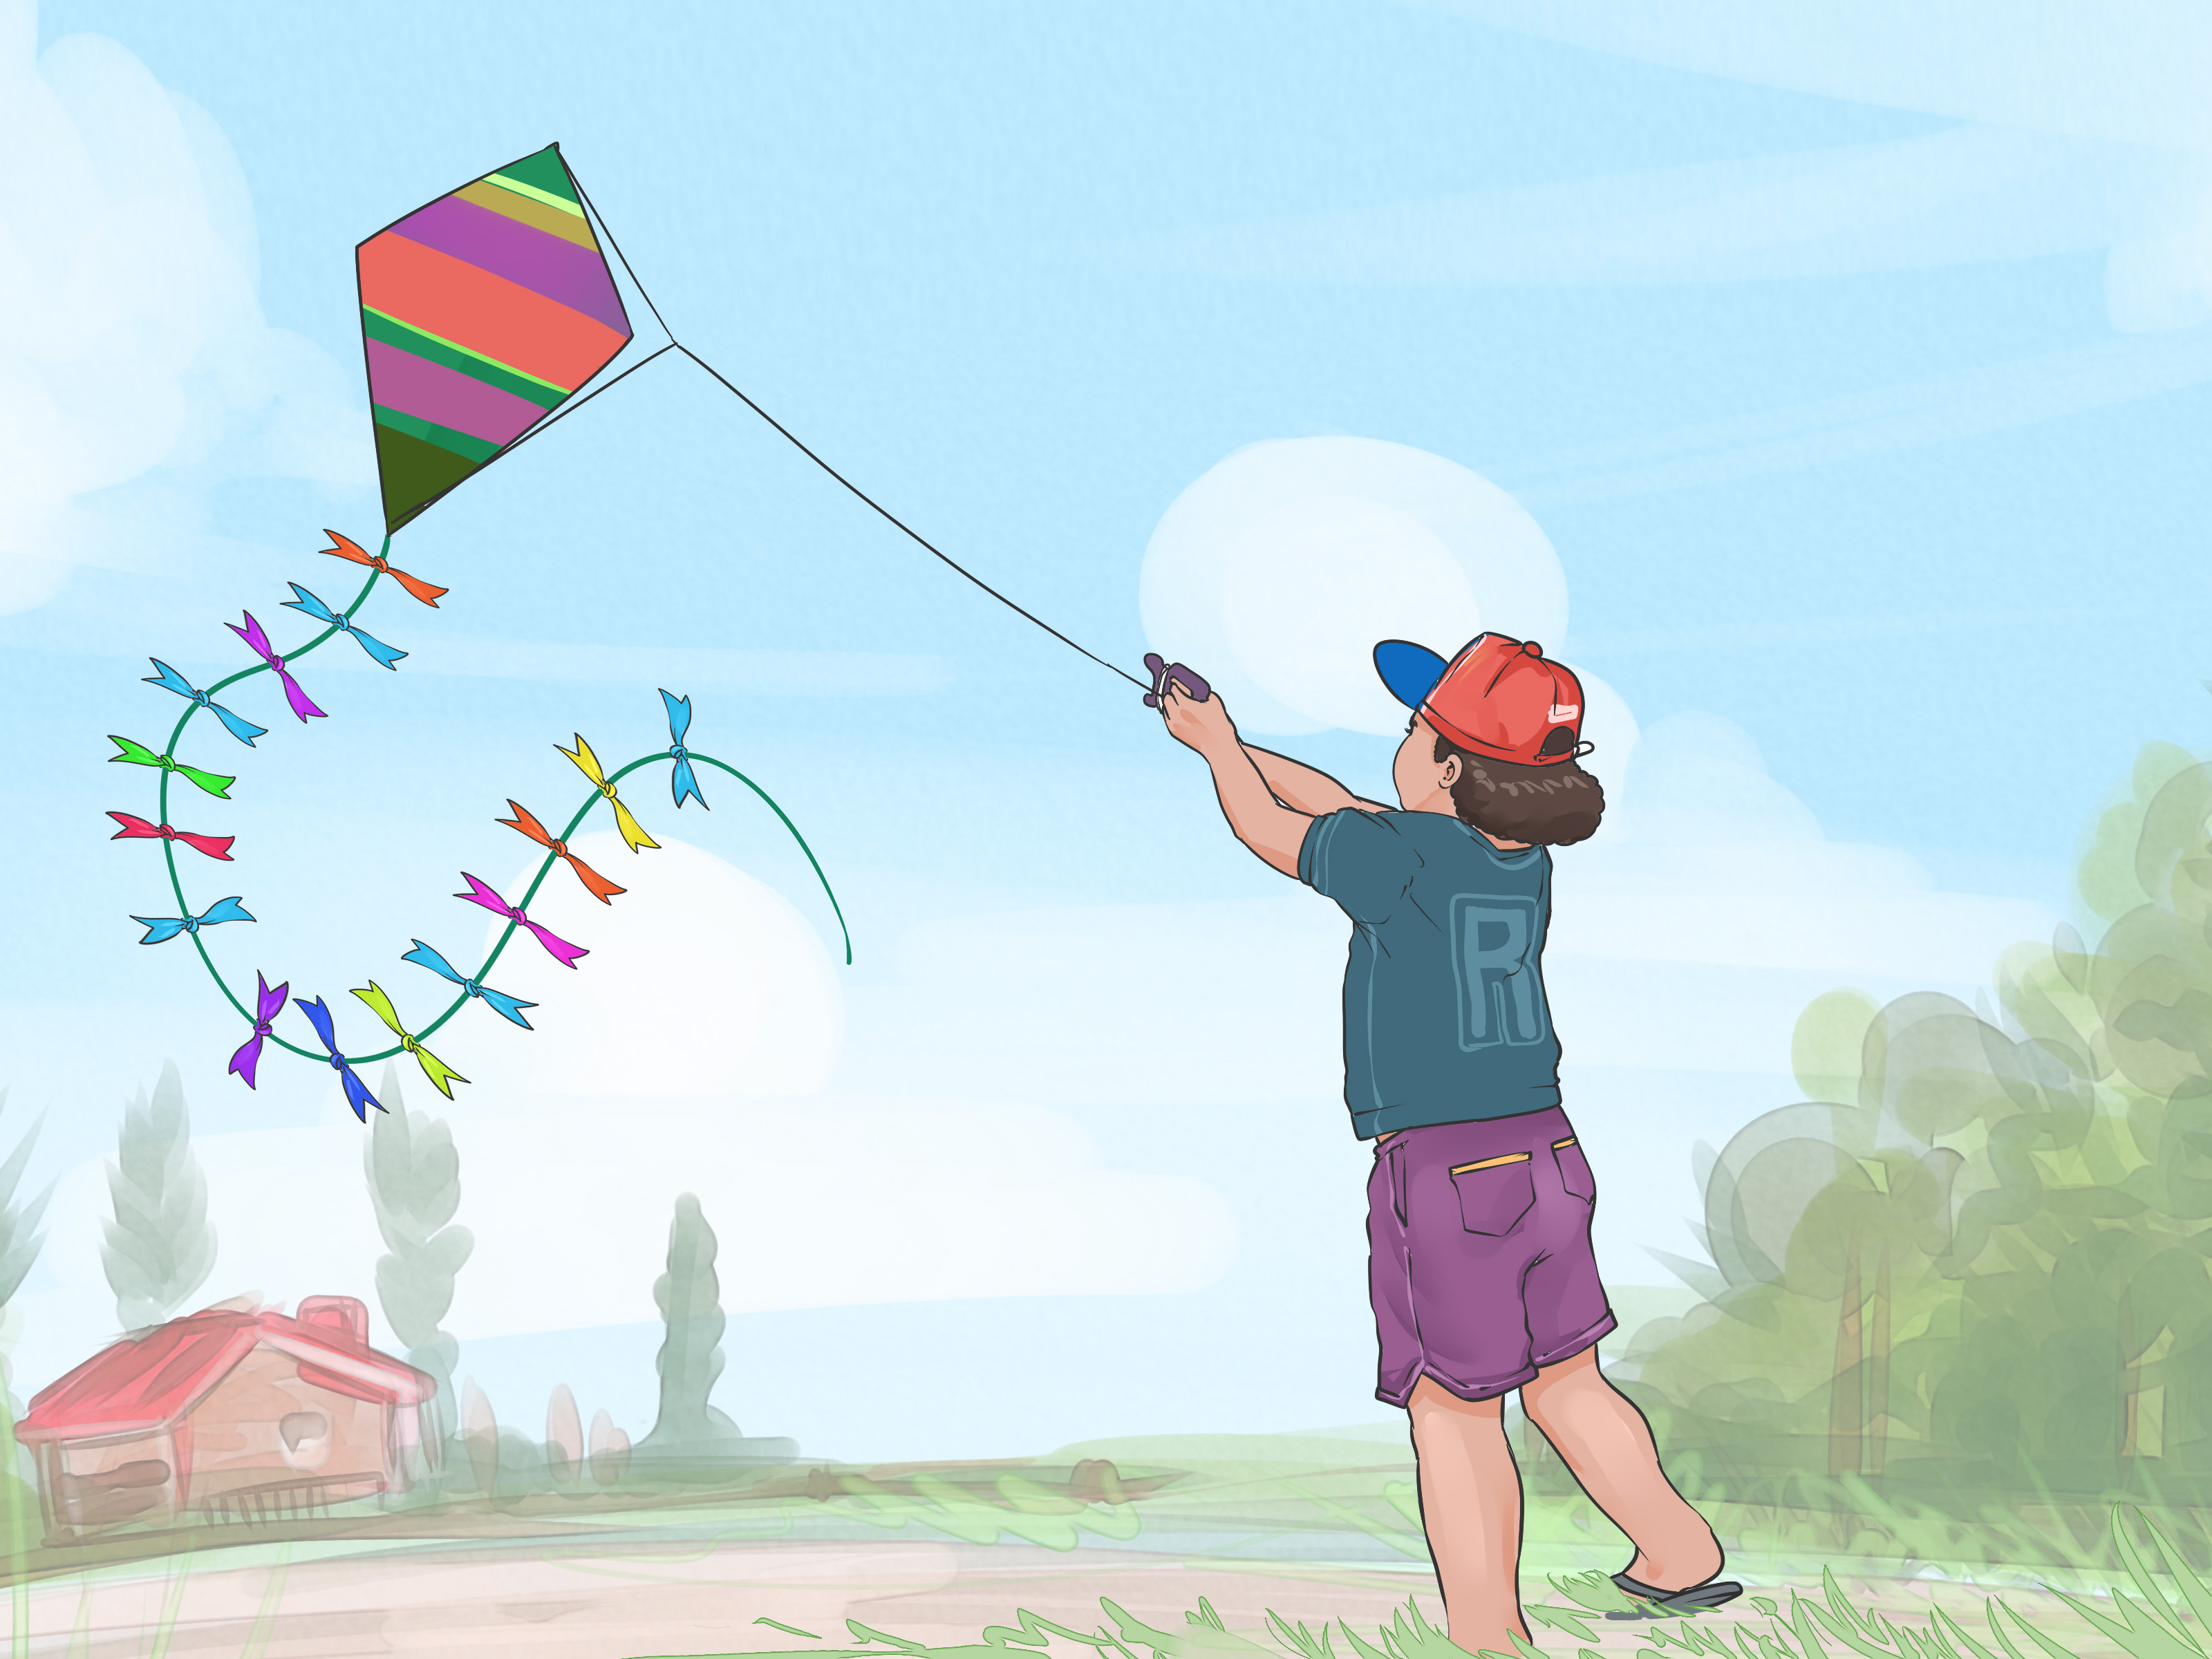 How To Make A Kite For Kids With Pictures